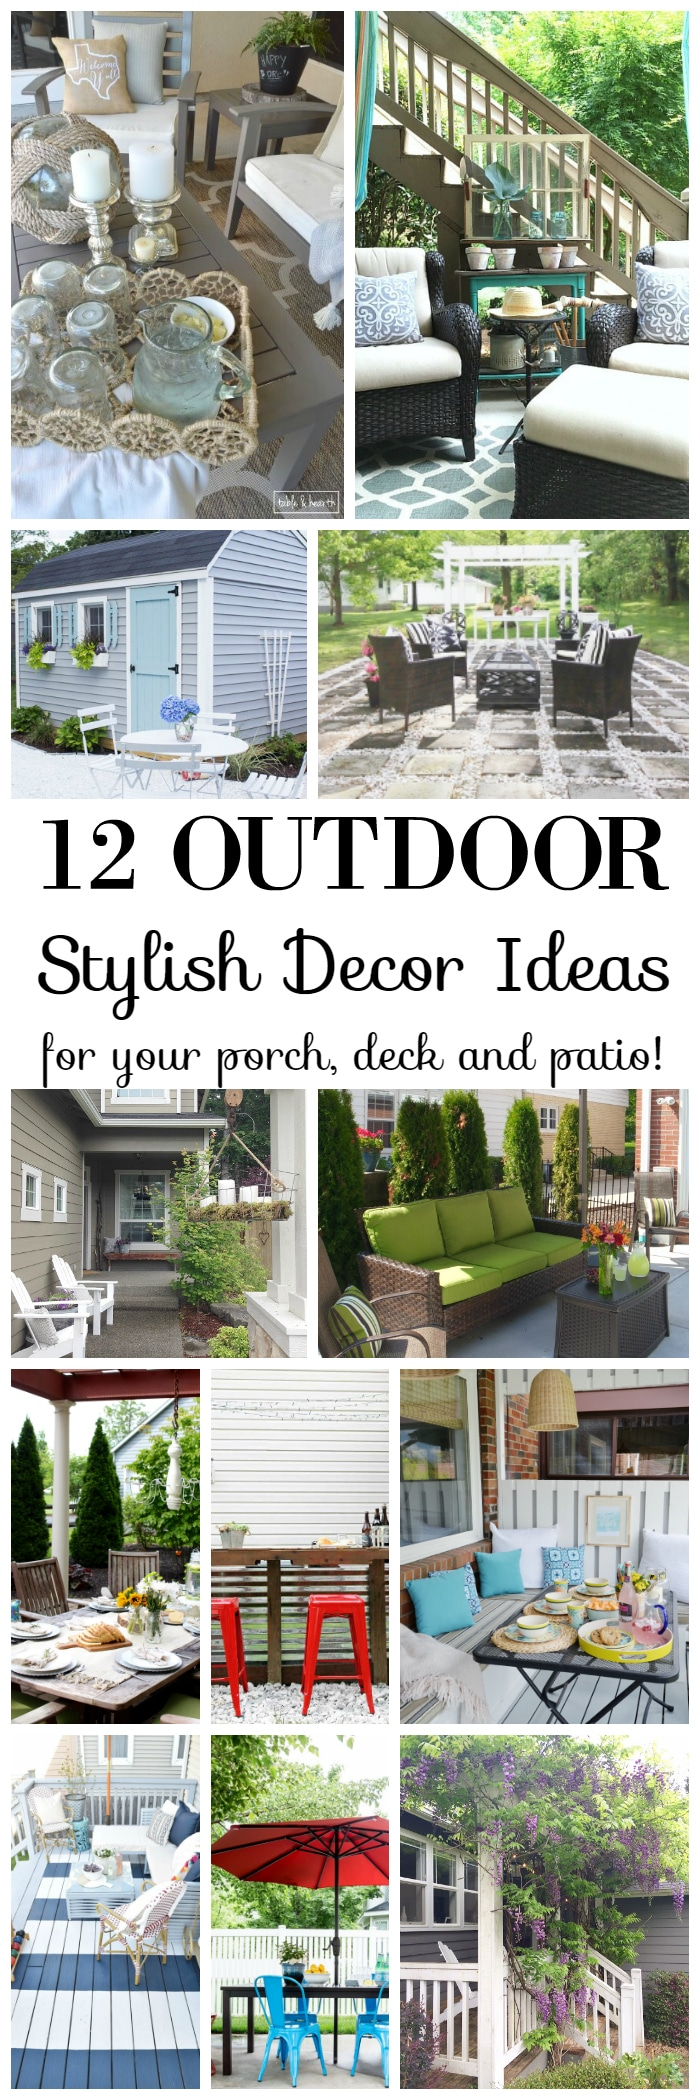 Looking for new ideas to makeover and refresh your outdoor living areas? Need some furniture layout ideas and decorating tips? Maybe you just need a small refresh or a bigger re-do! Check out these 12 Stylish Outdoor Porch, Deck and Patio Decor Ideas.